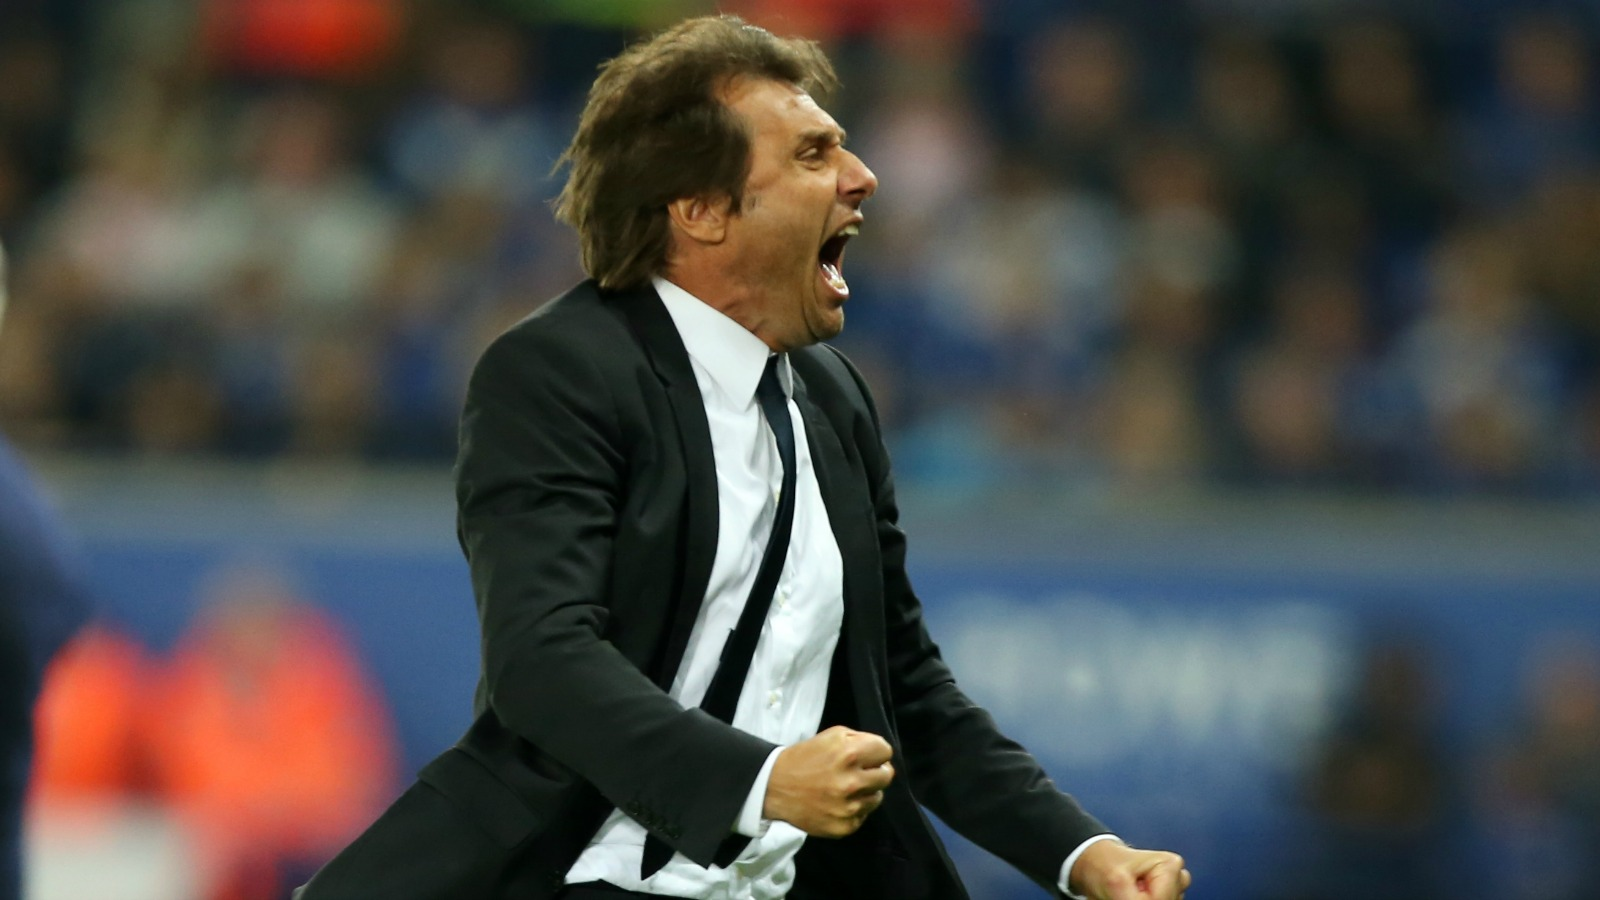 The 5 biggest changes Antonio Conte has implemented to make Chelsea contenders